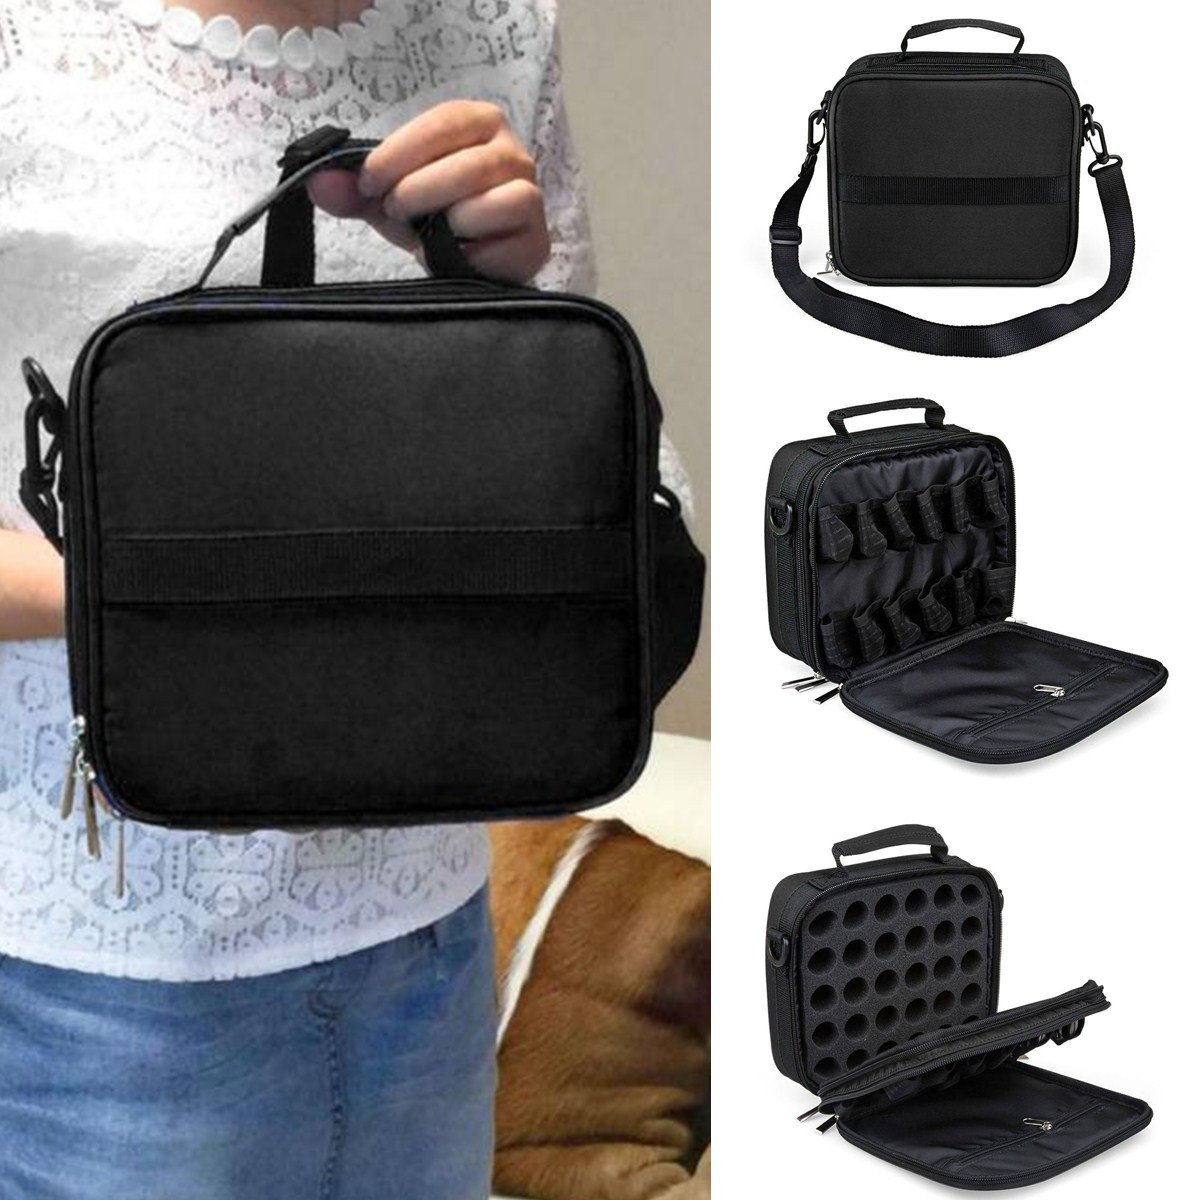 42 Bottle Portable Essential Oil Carrying Case Nail Polish Bag Holder Storage Carry Tote